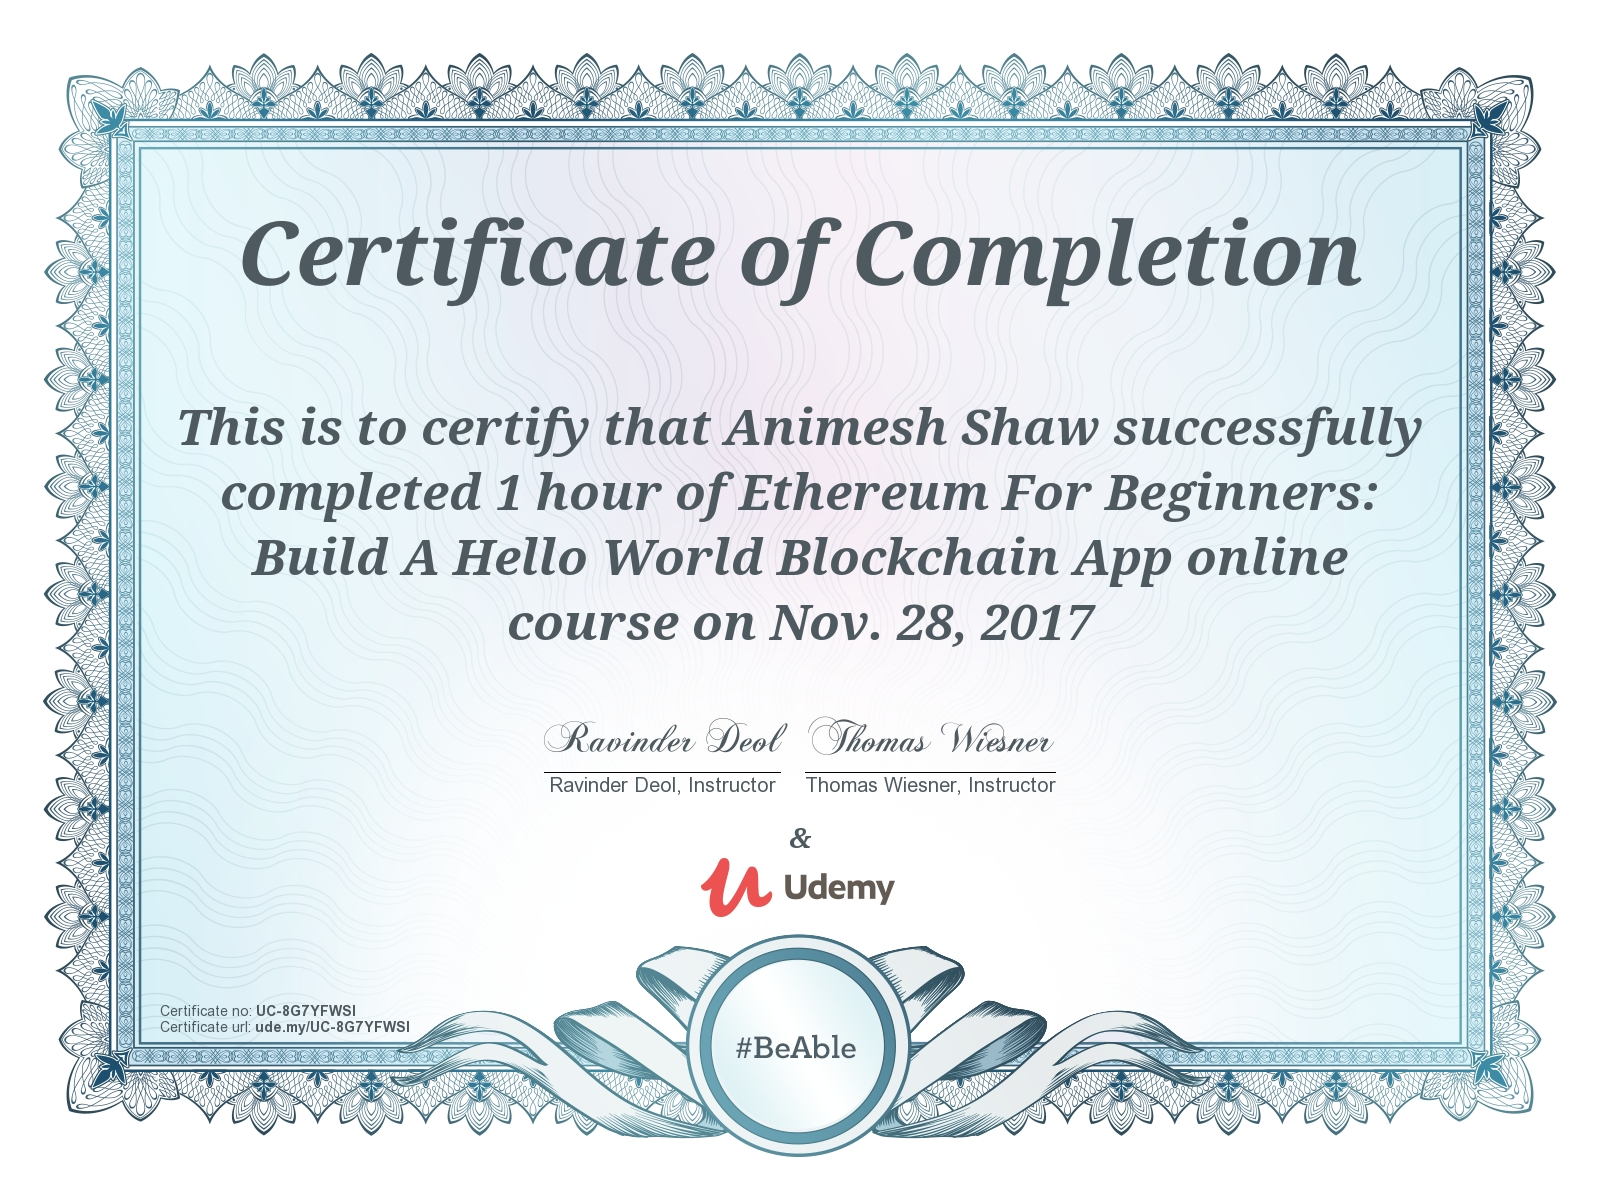 Ethereum for Beginners - Certificate - Animesh Shaw